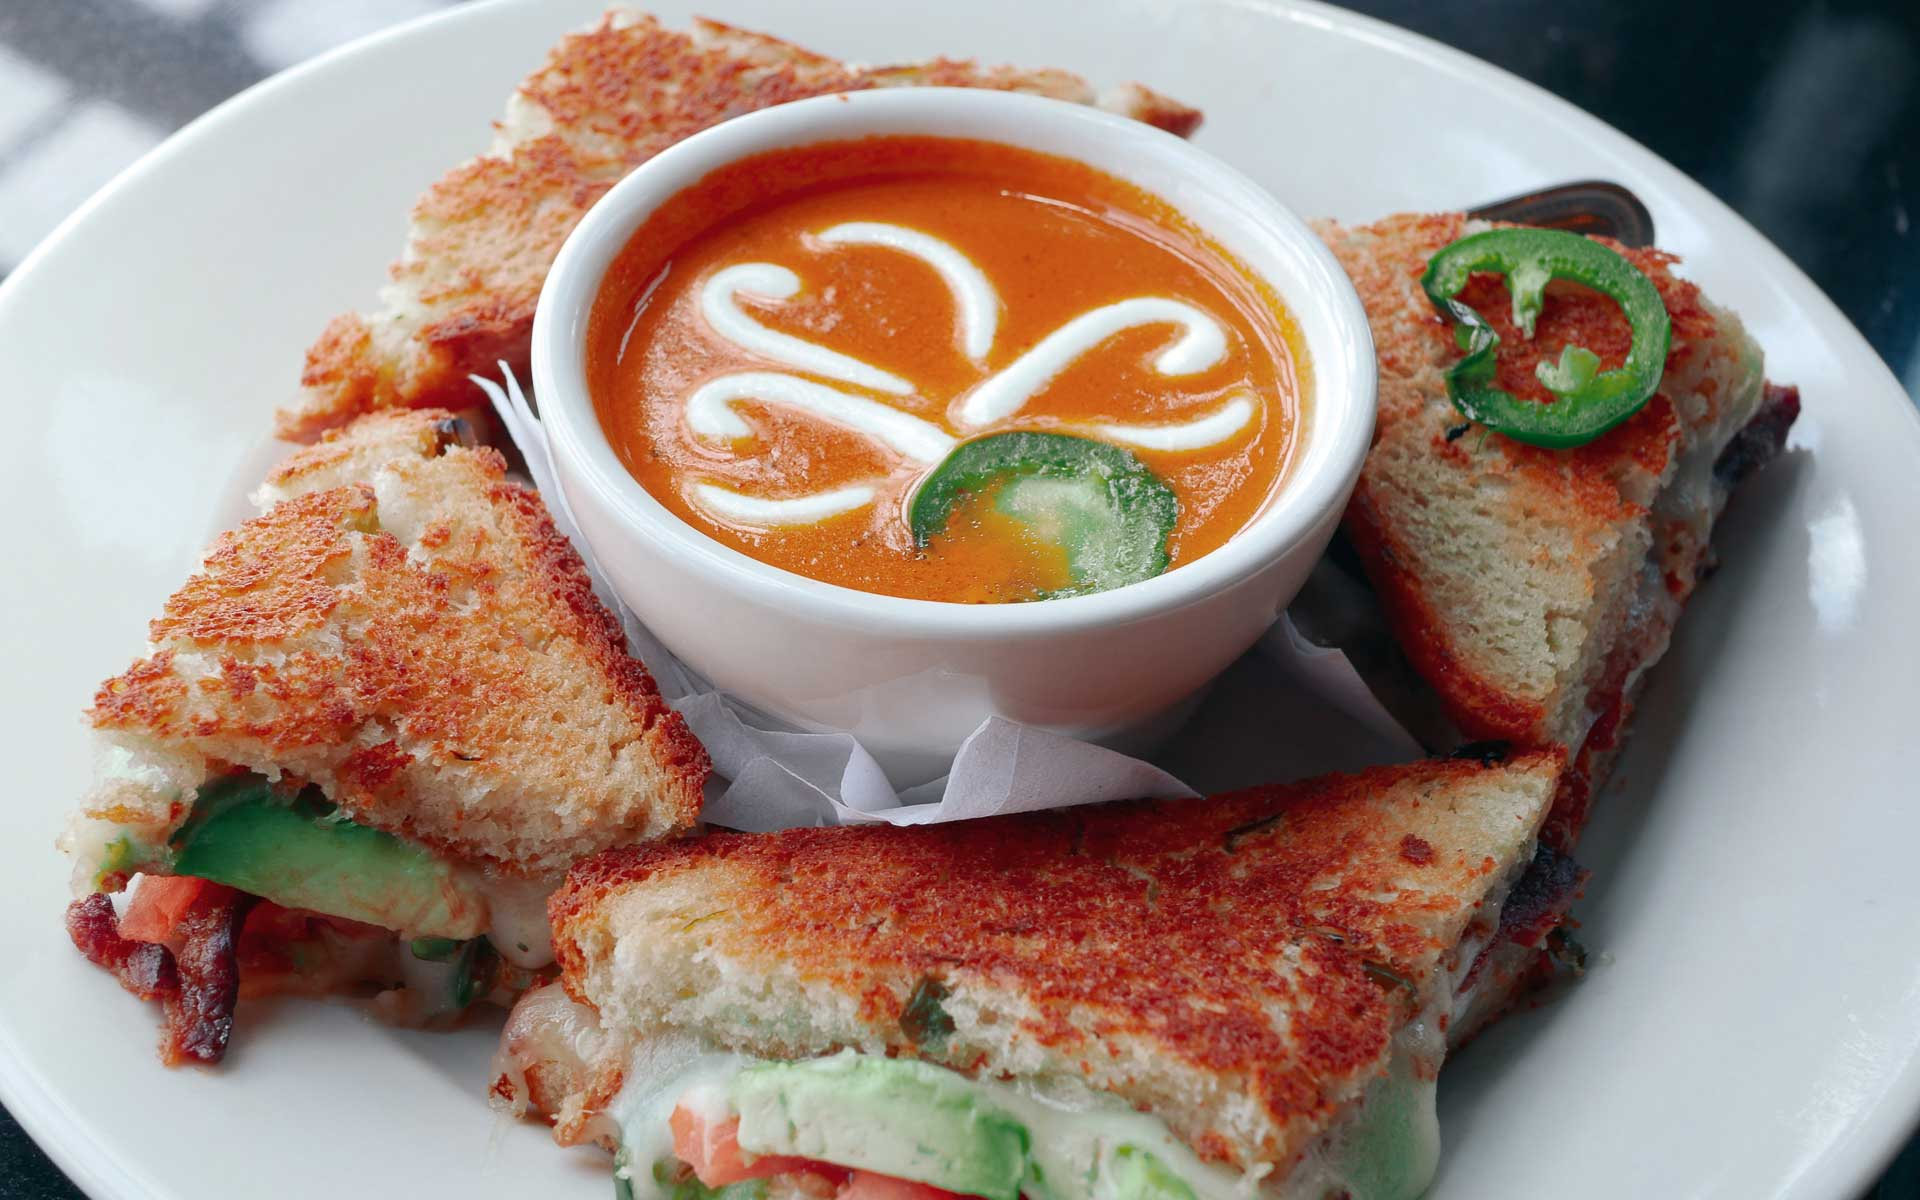 Mo's Irish Pub Jalapeno Grilled Cheese